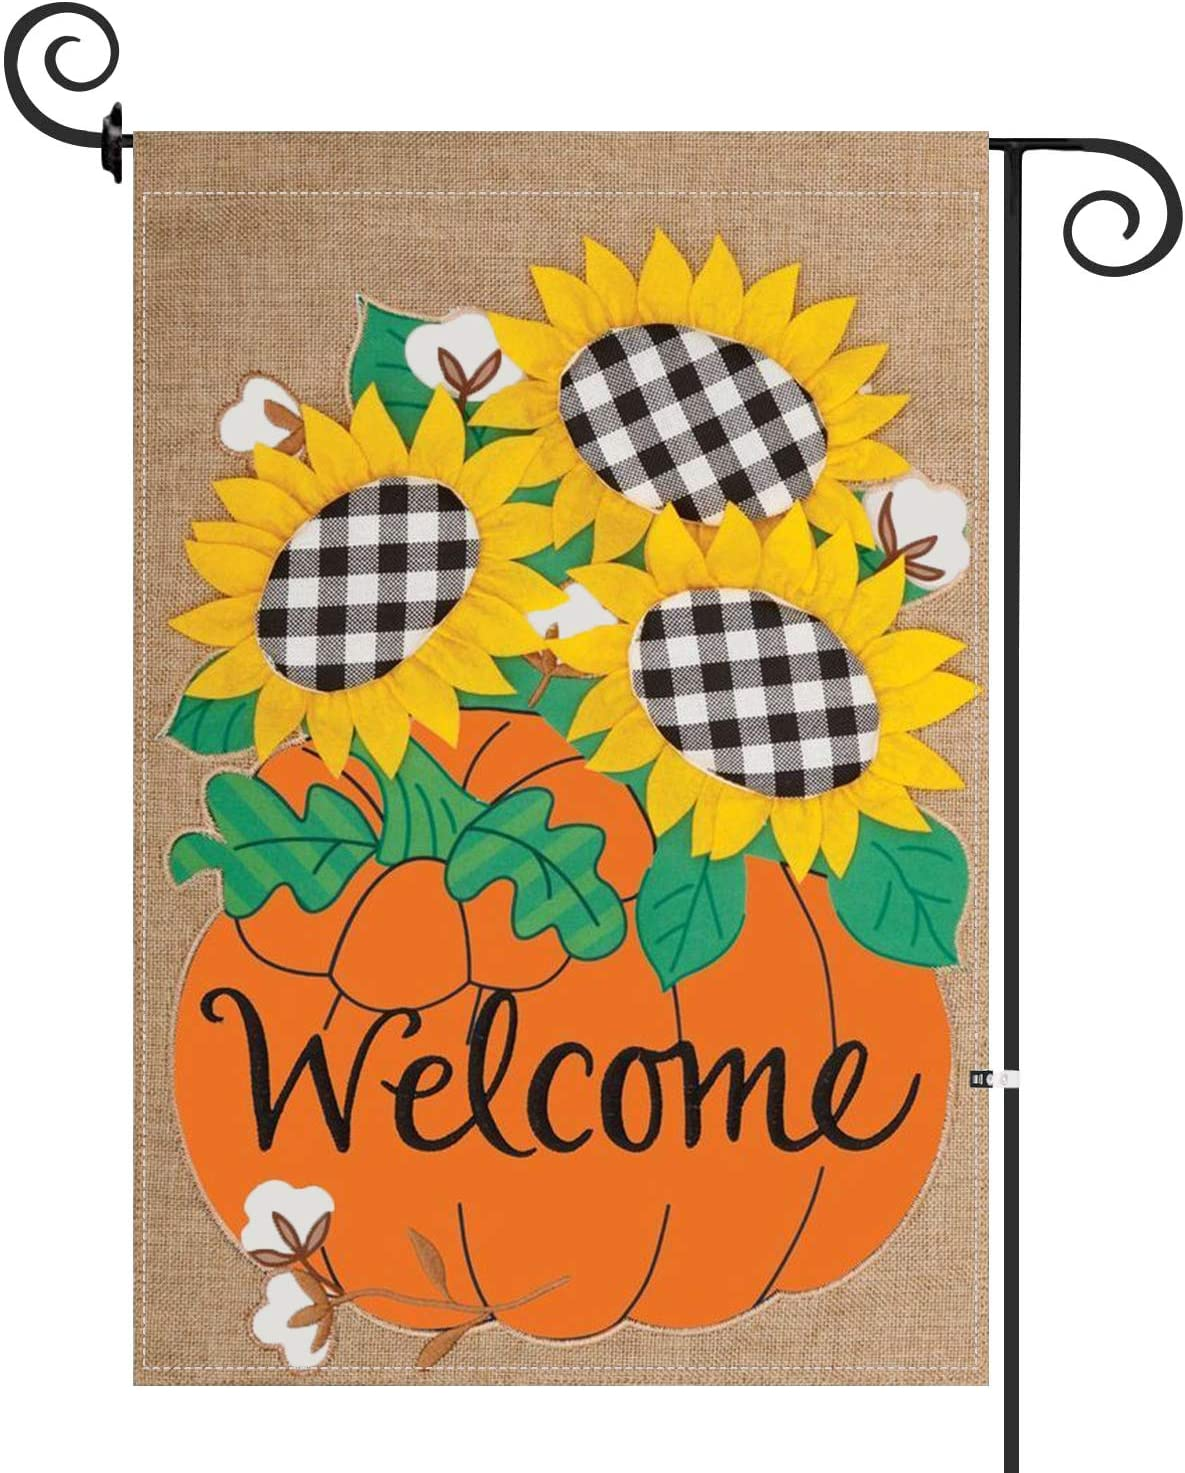 Fall Garden Flag Welcome Fall Flag Double Sided Autumn Garden Flag Pumpkin Garden Flags 12 x 18 Inch for Thanksgiving Outdoor Decorations Burlap Yard Banner Harvest Rustic Lawn Decor